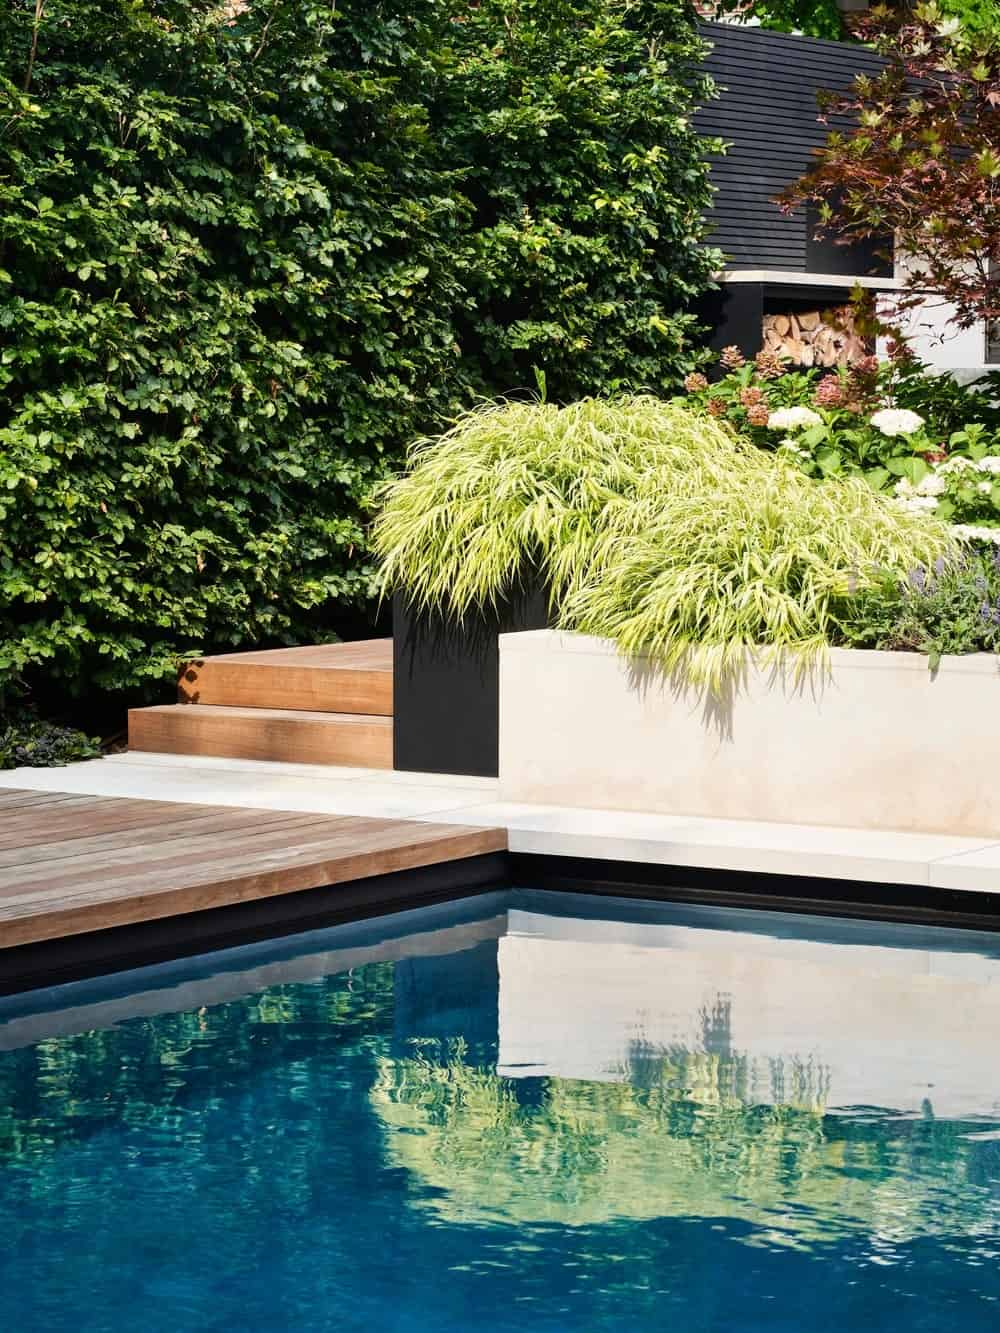 Backyard pool in the Forest Hill Garden & Pavilion designed by Amantea Architects.